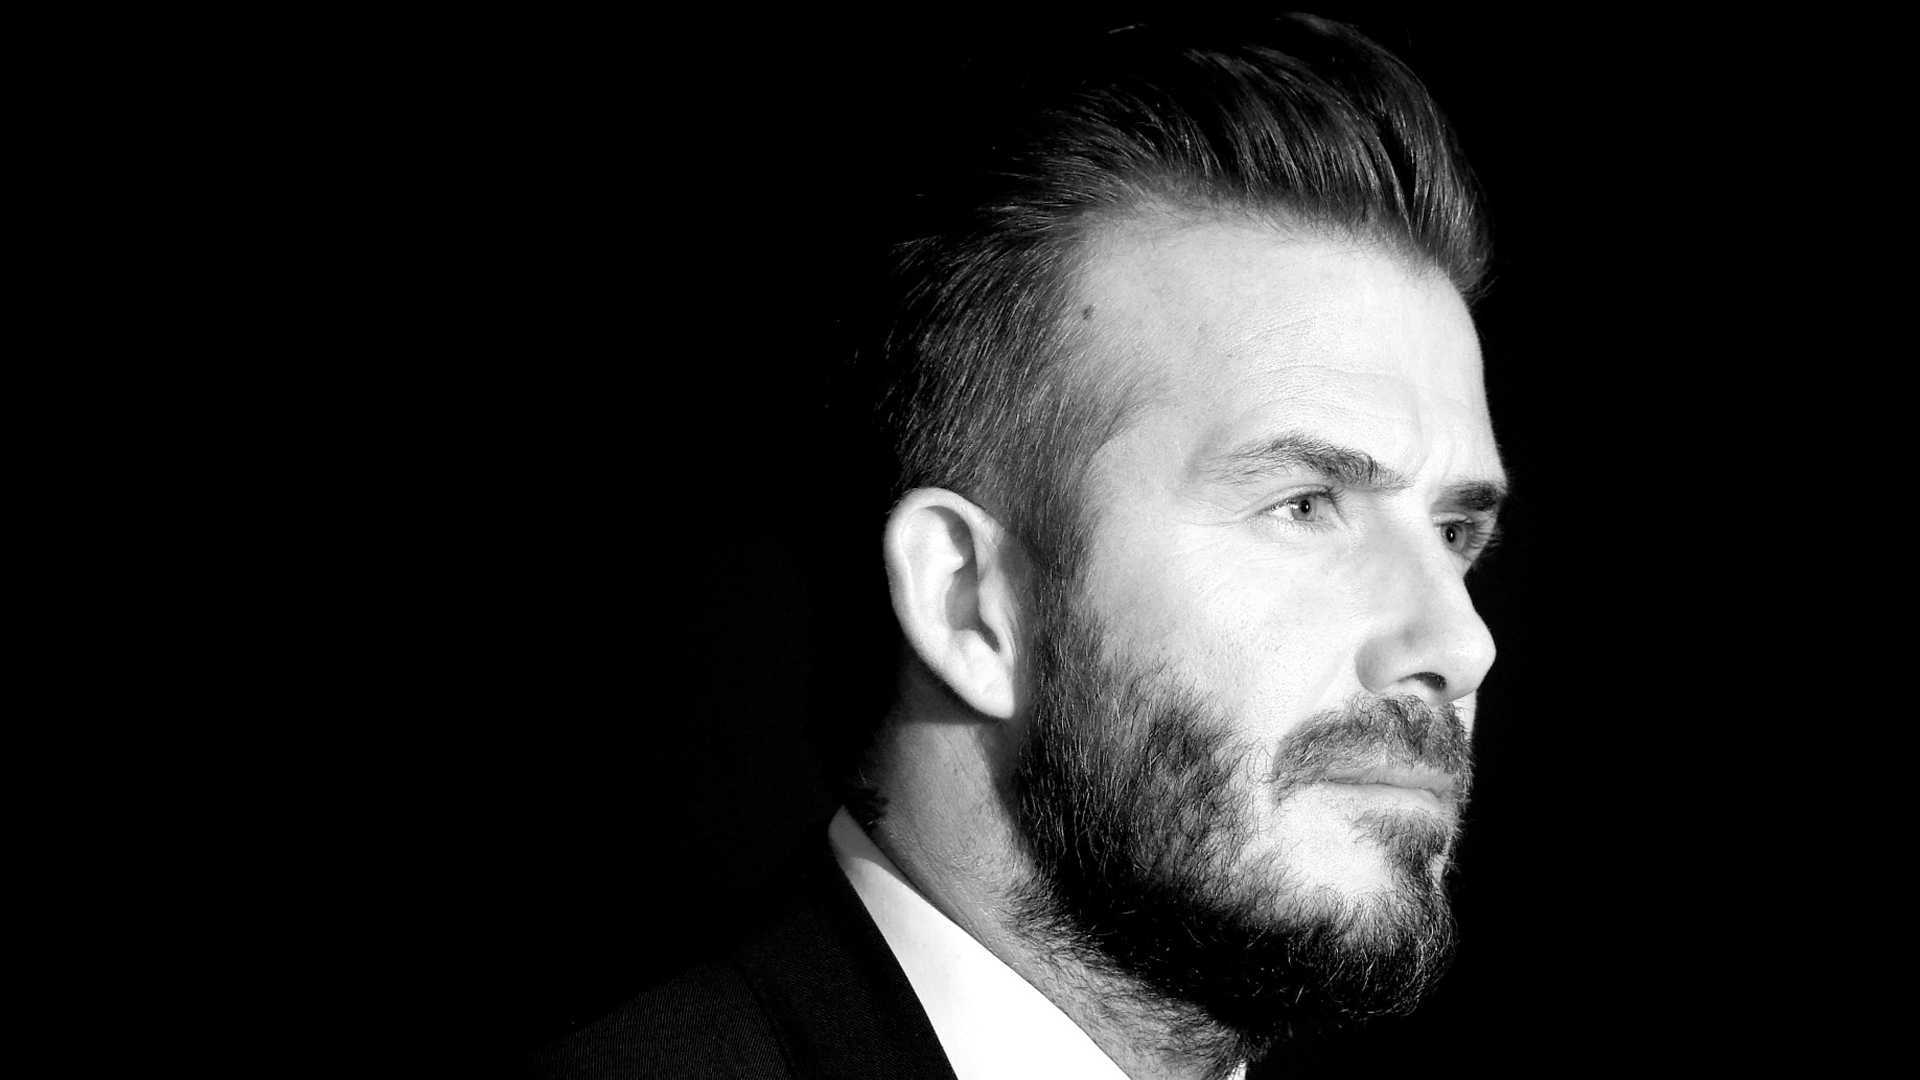 David Beckham Masculinity HD Wallpaper